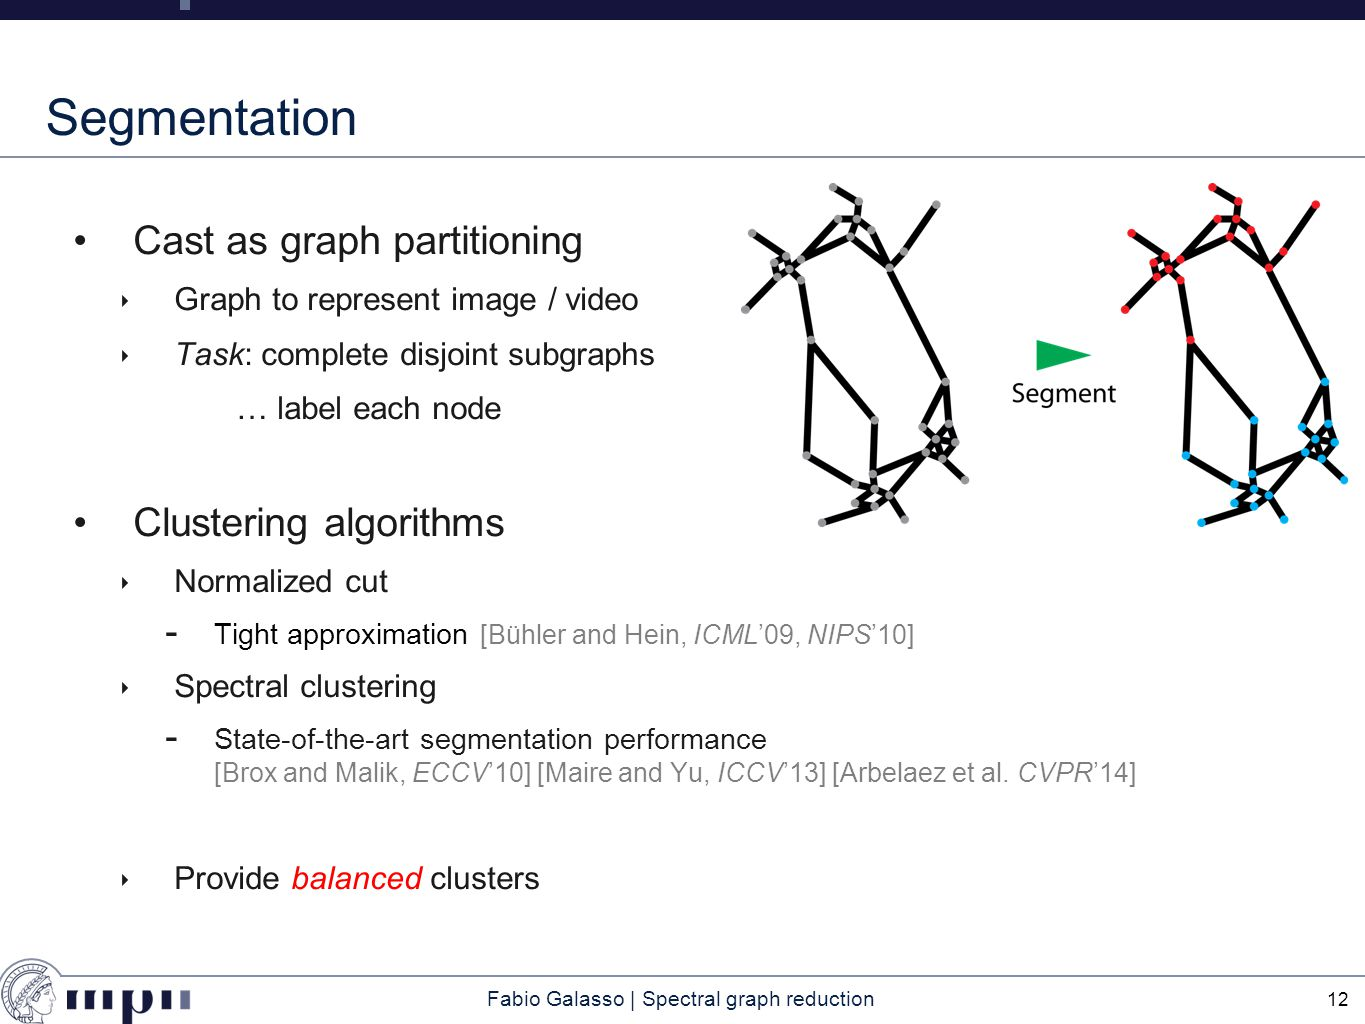 Fabio Galasso | Spectral graph reduction Segmentation Cast as graph partitioning ‣ Graph to represent image / video ‣ Task: complete disjoint subgraphs … label each node Clustering algorithms ‣ Normalized cut  Tight approximation [Bühler and Hein, ICML'09, NIPS'10] ‣ Spectral clustering  State-of-the-art segmentation performance [Brox and Malik, ECCV'10] [Maire and Yu, ICCV'13] [Arbelaez et al.